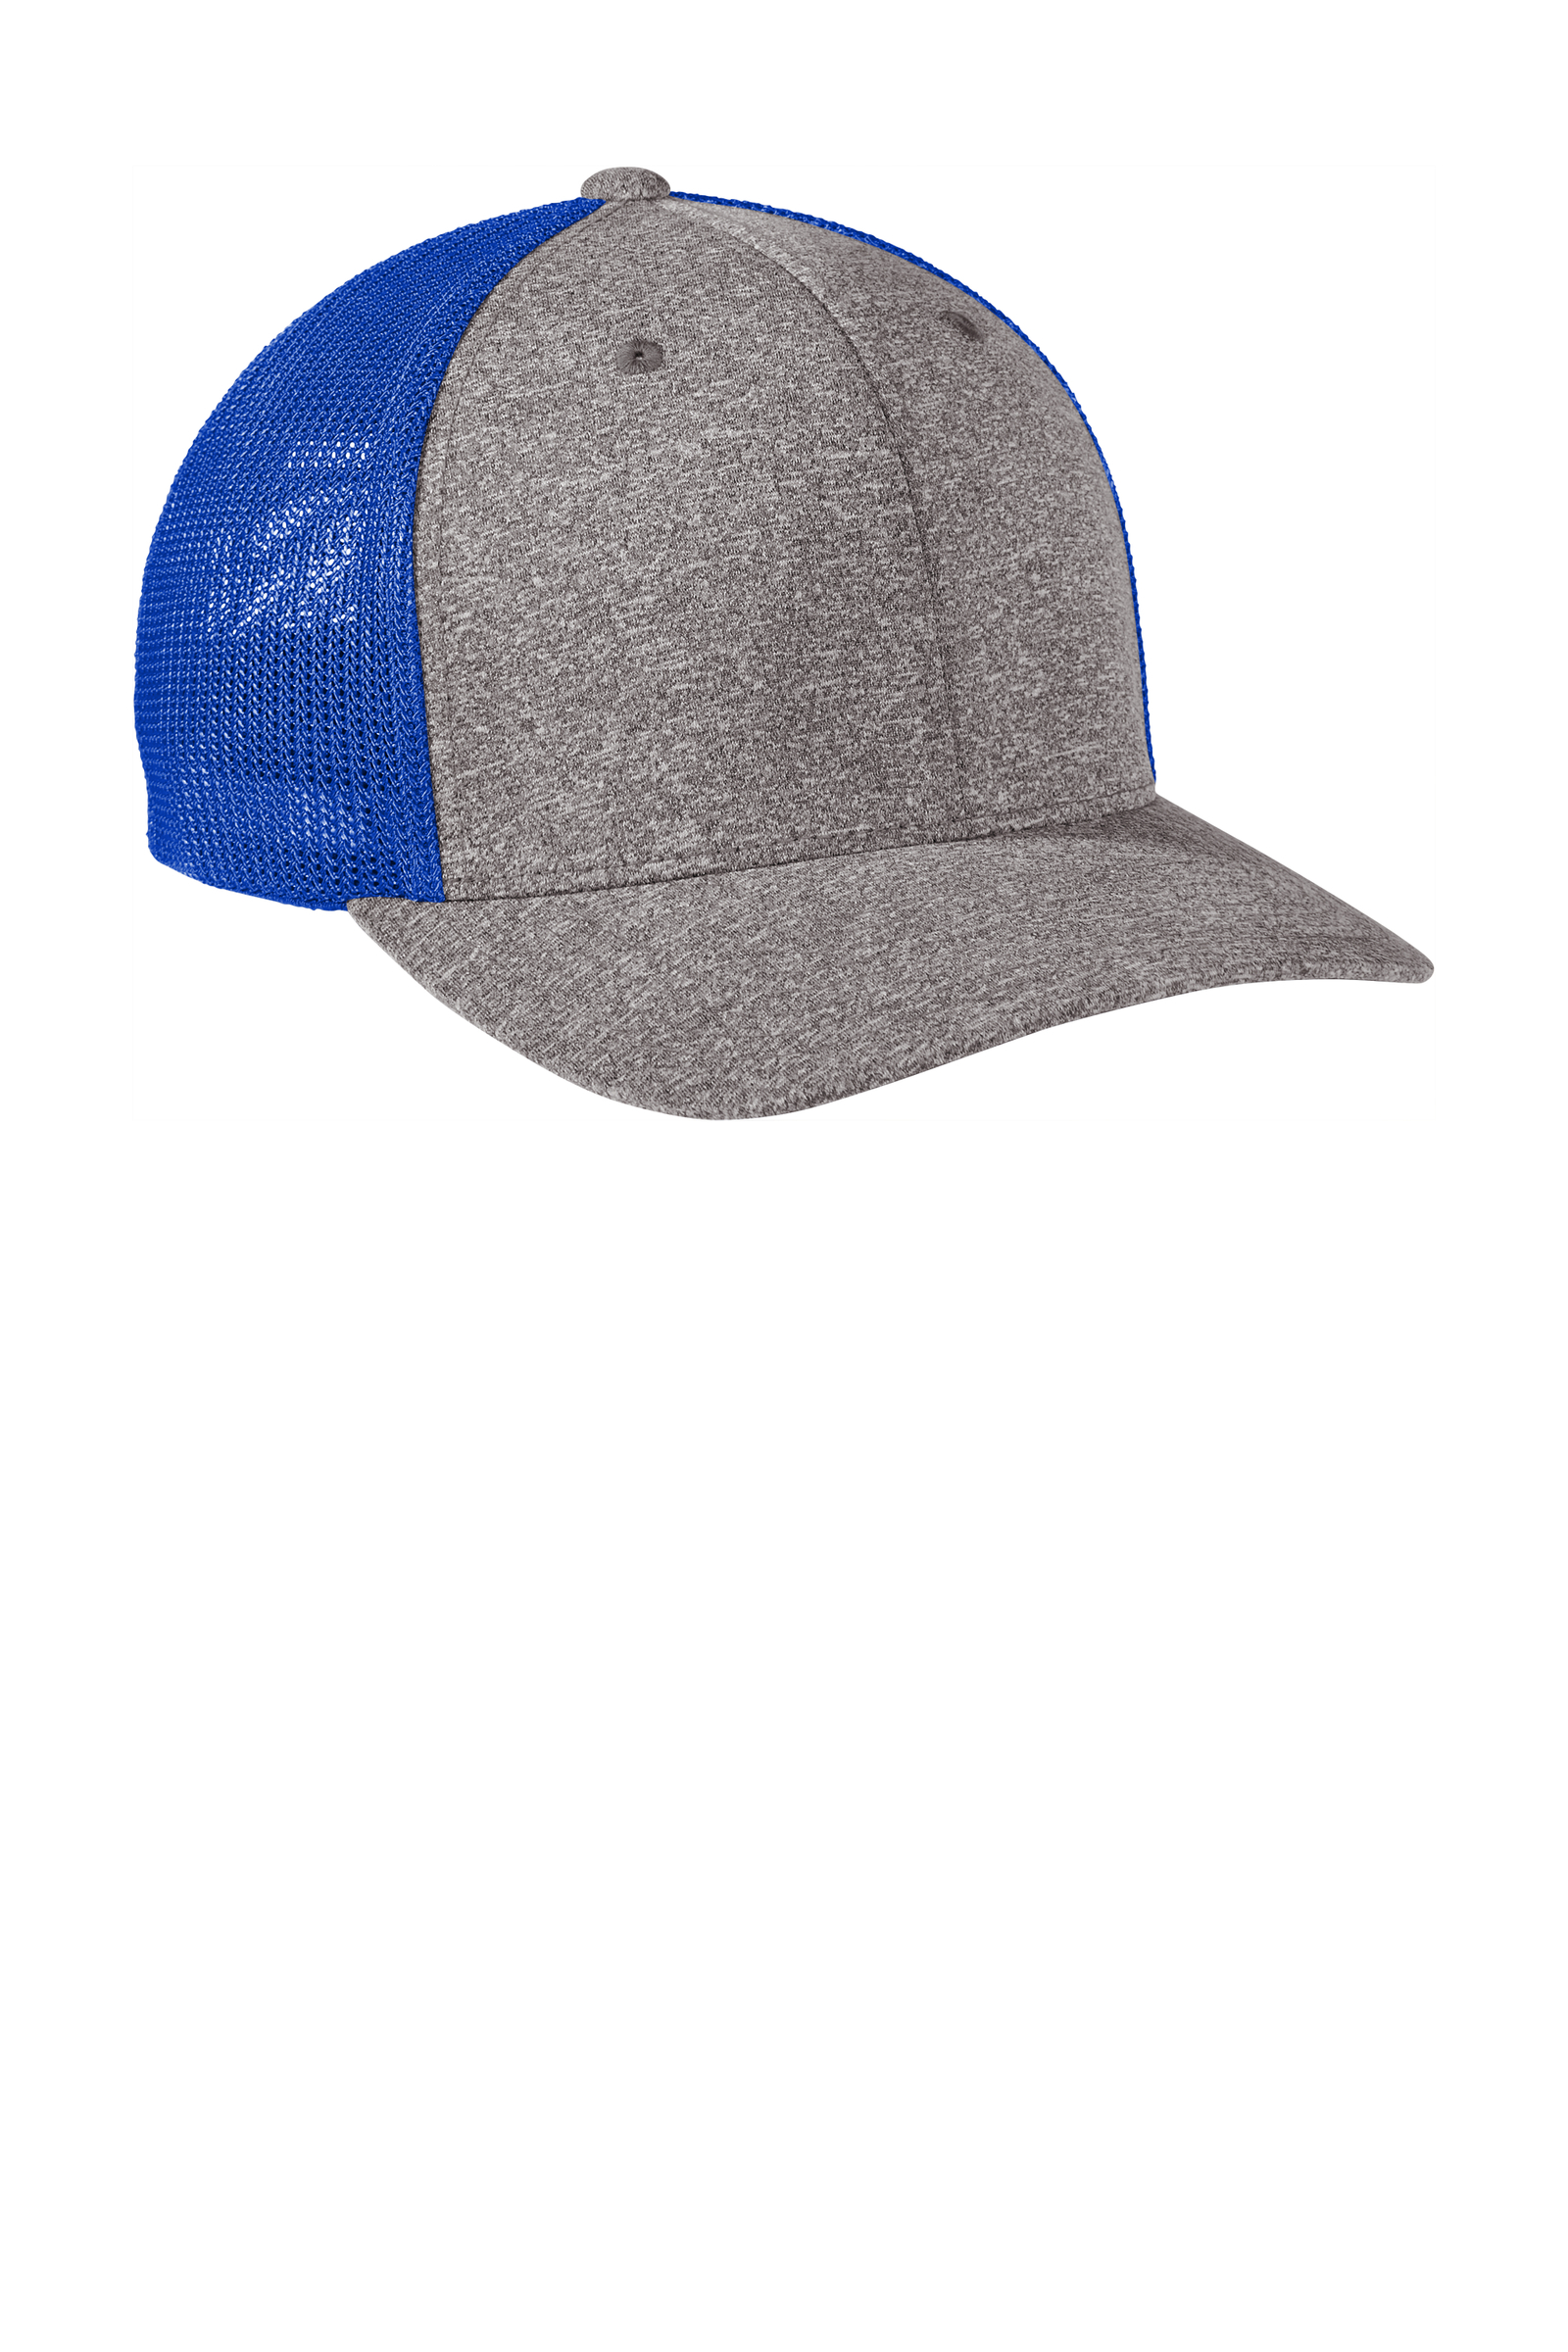 Port Authority Embroidered Flexfit Melange Mesh Back Trucker Hat